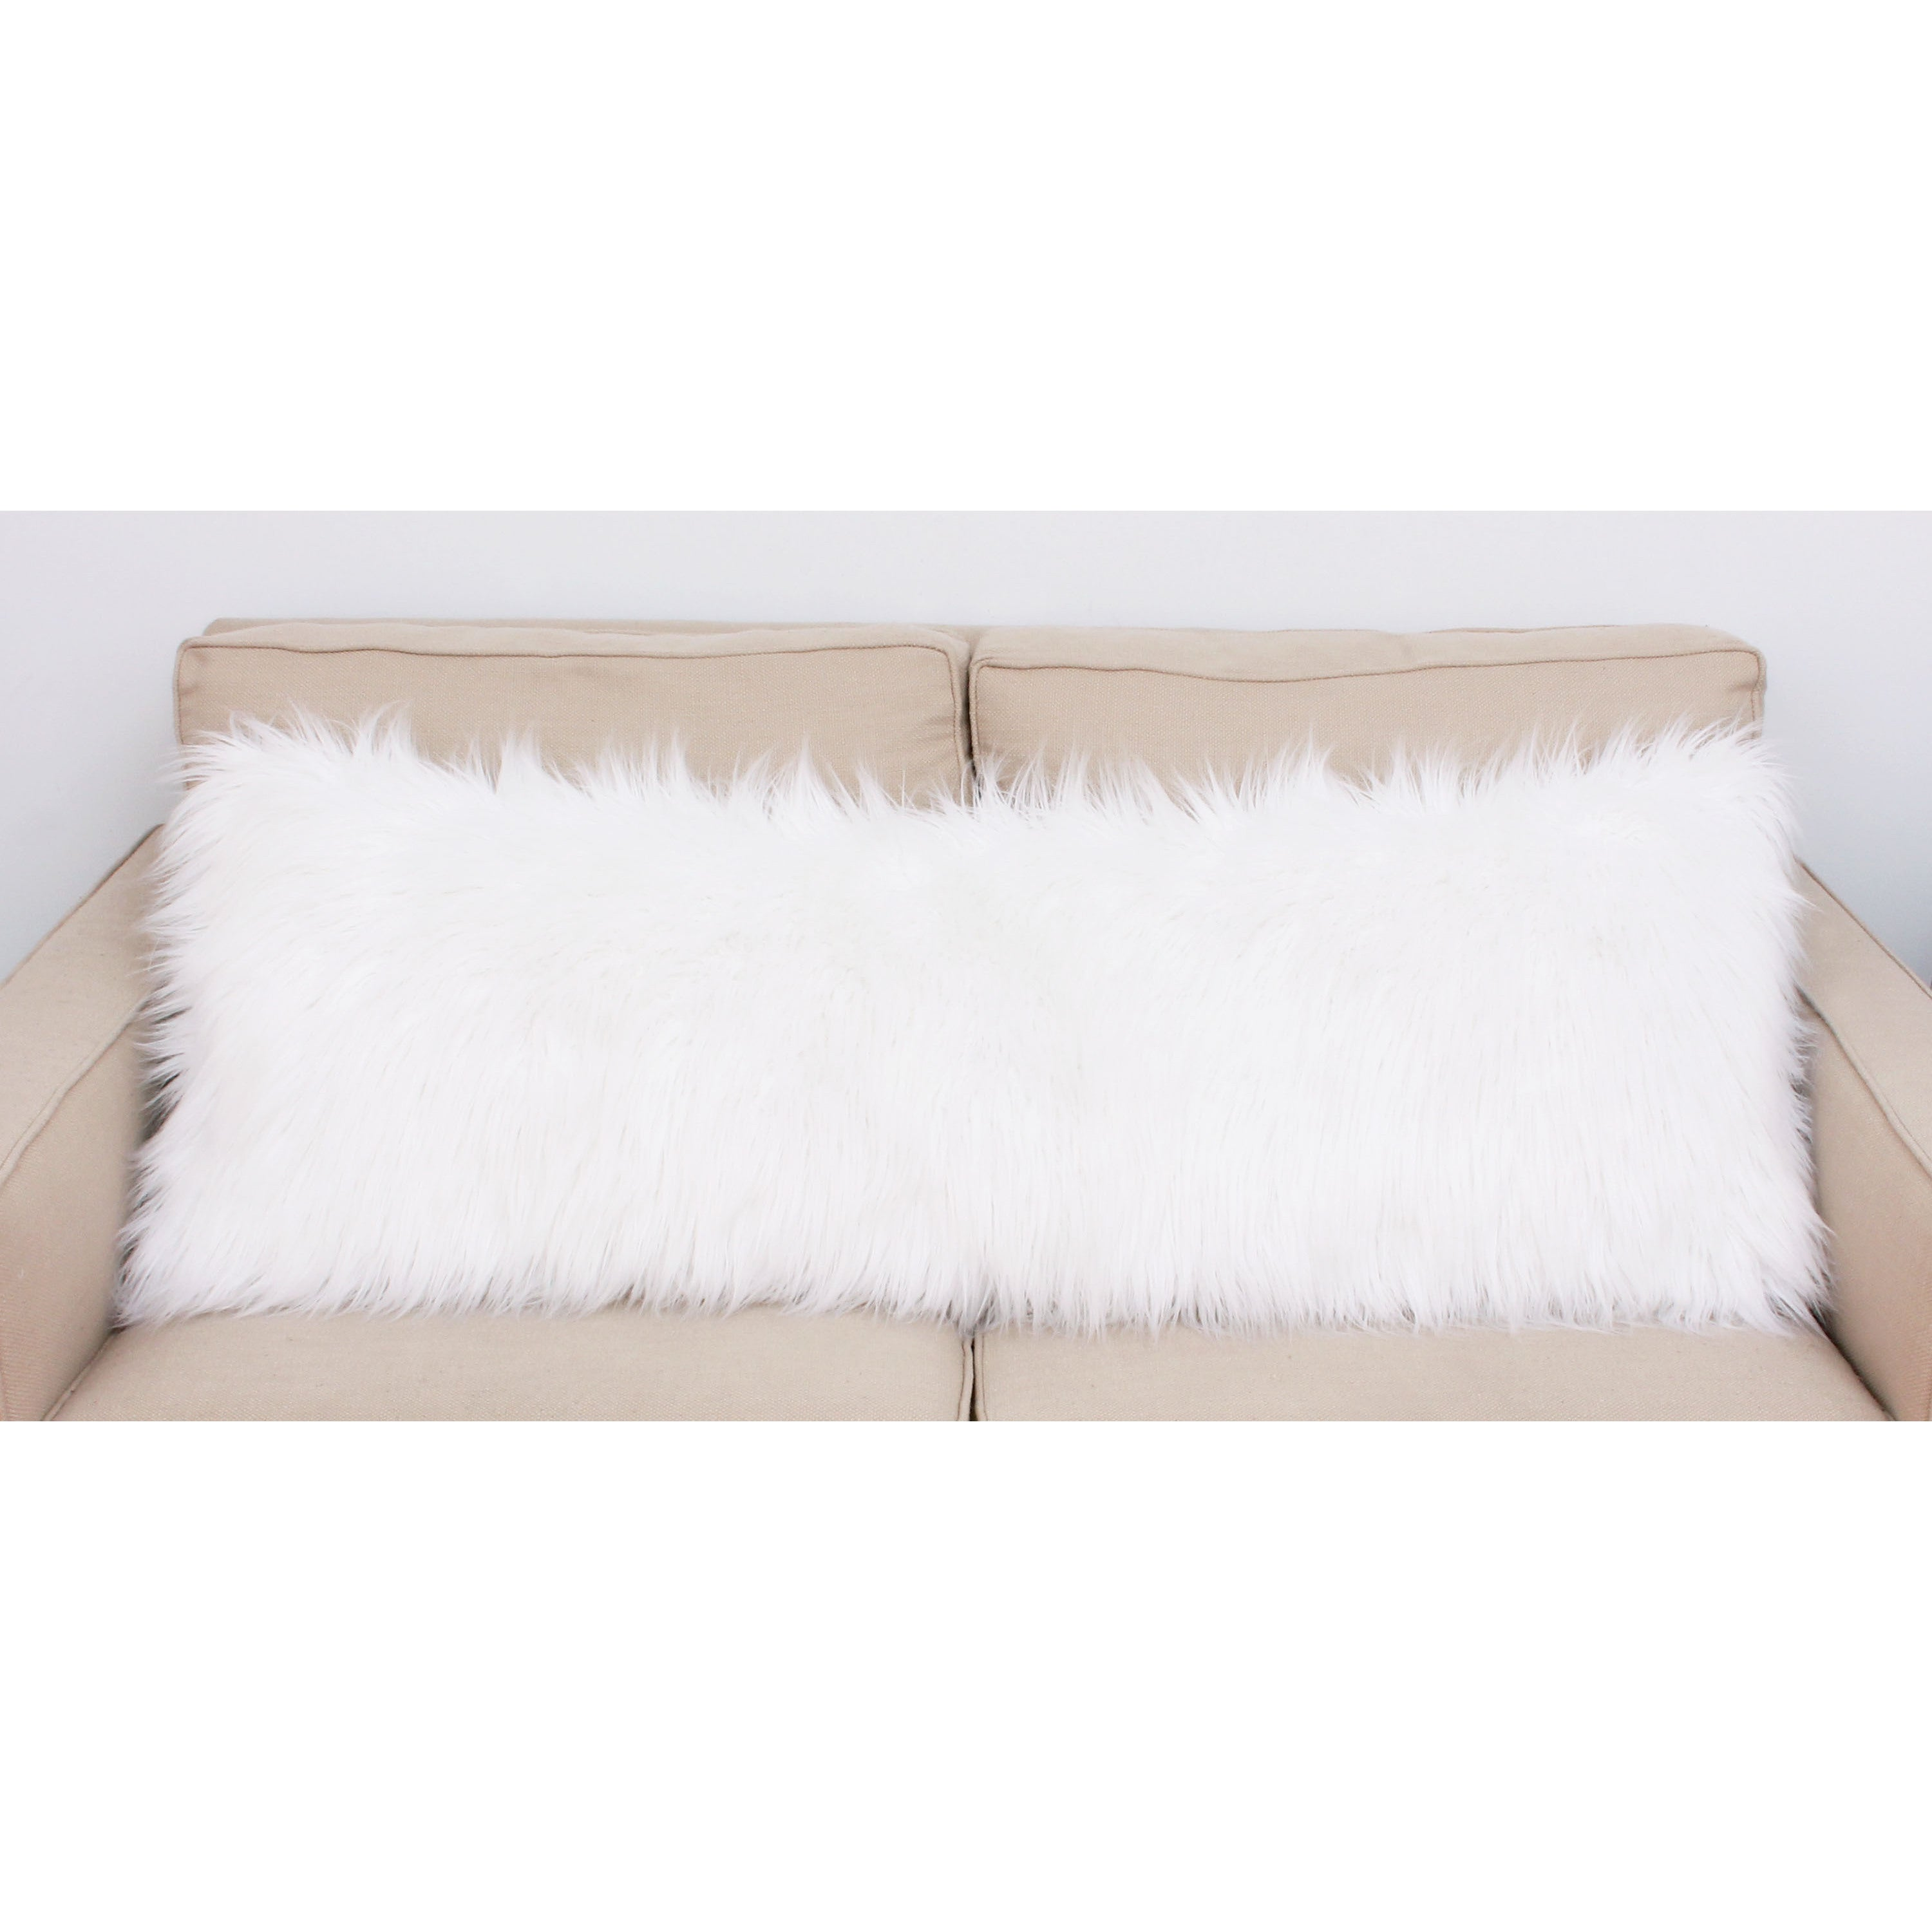 Shop Thro By Marlo Lorenz Keller White Faux Mongolian Fur Body